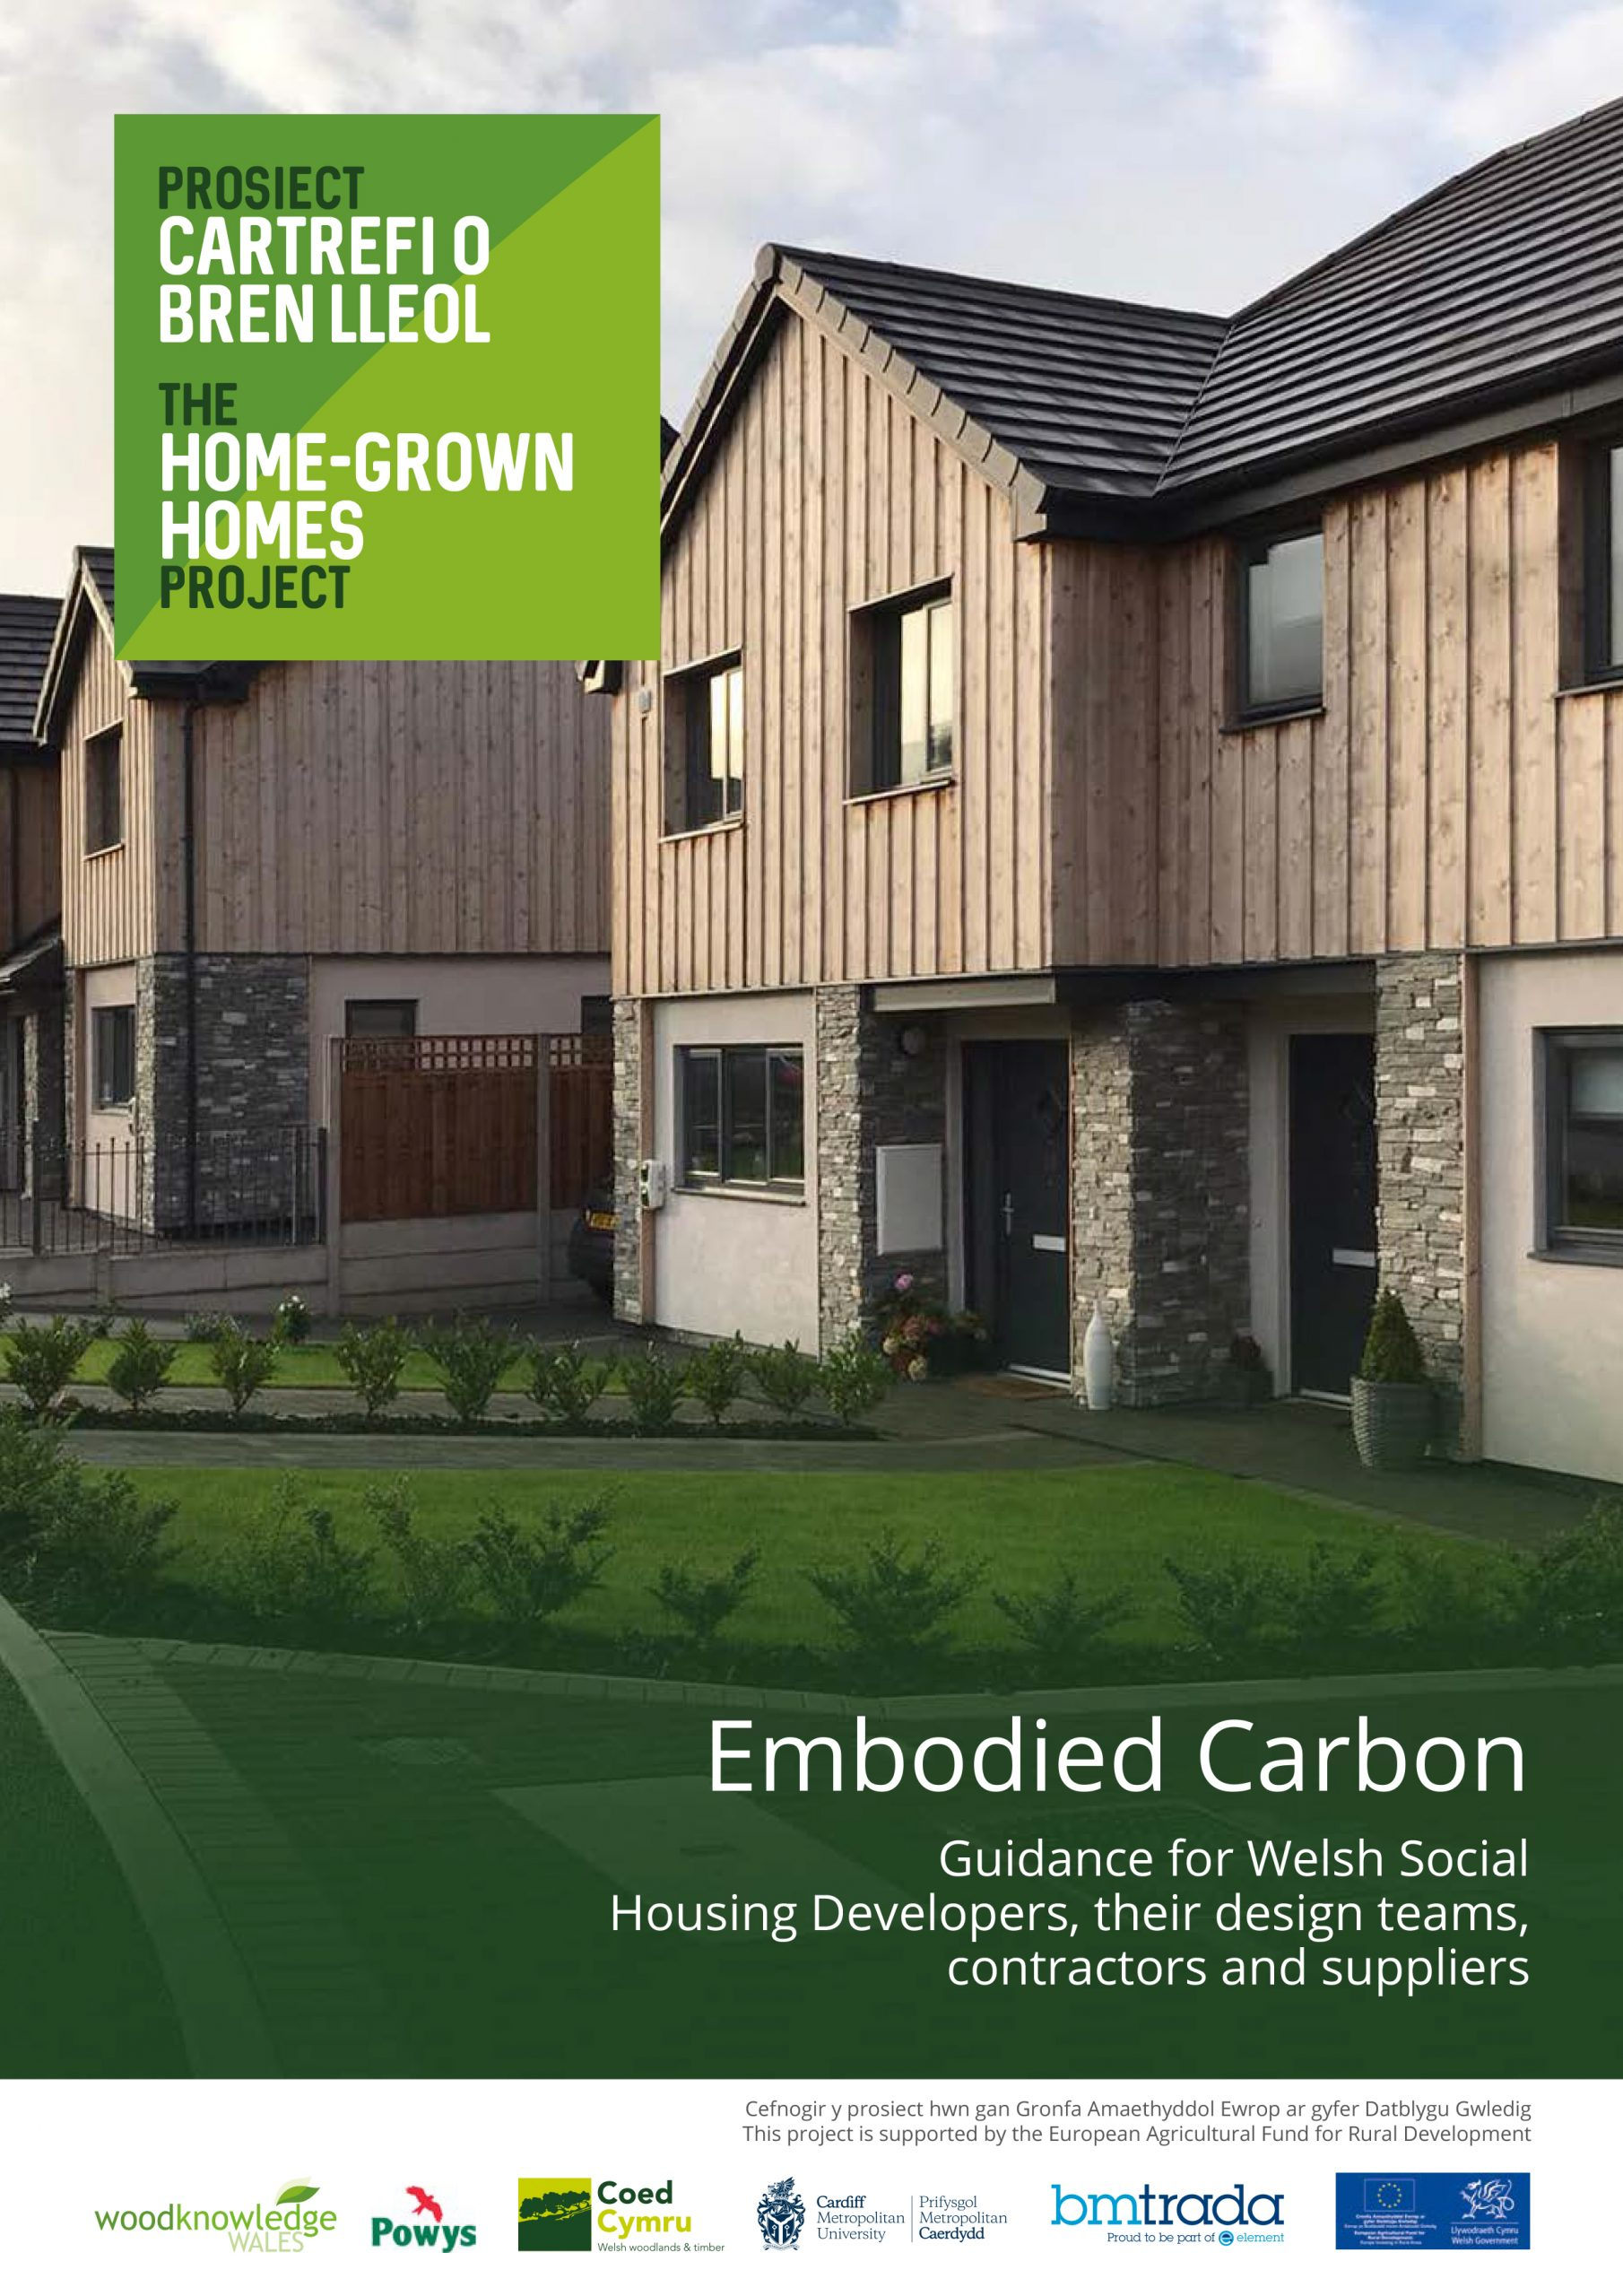 Embodied Carbon Guidance for social housing developers, their design teams, contractors and suppliers